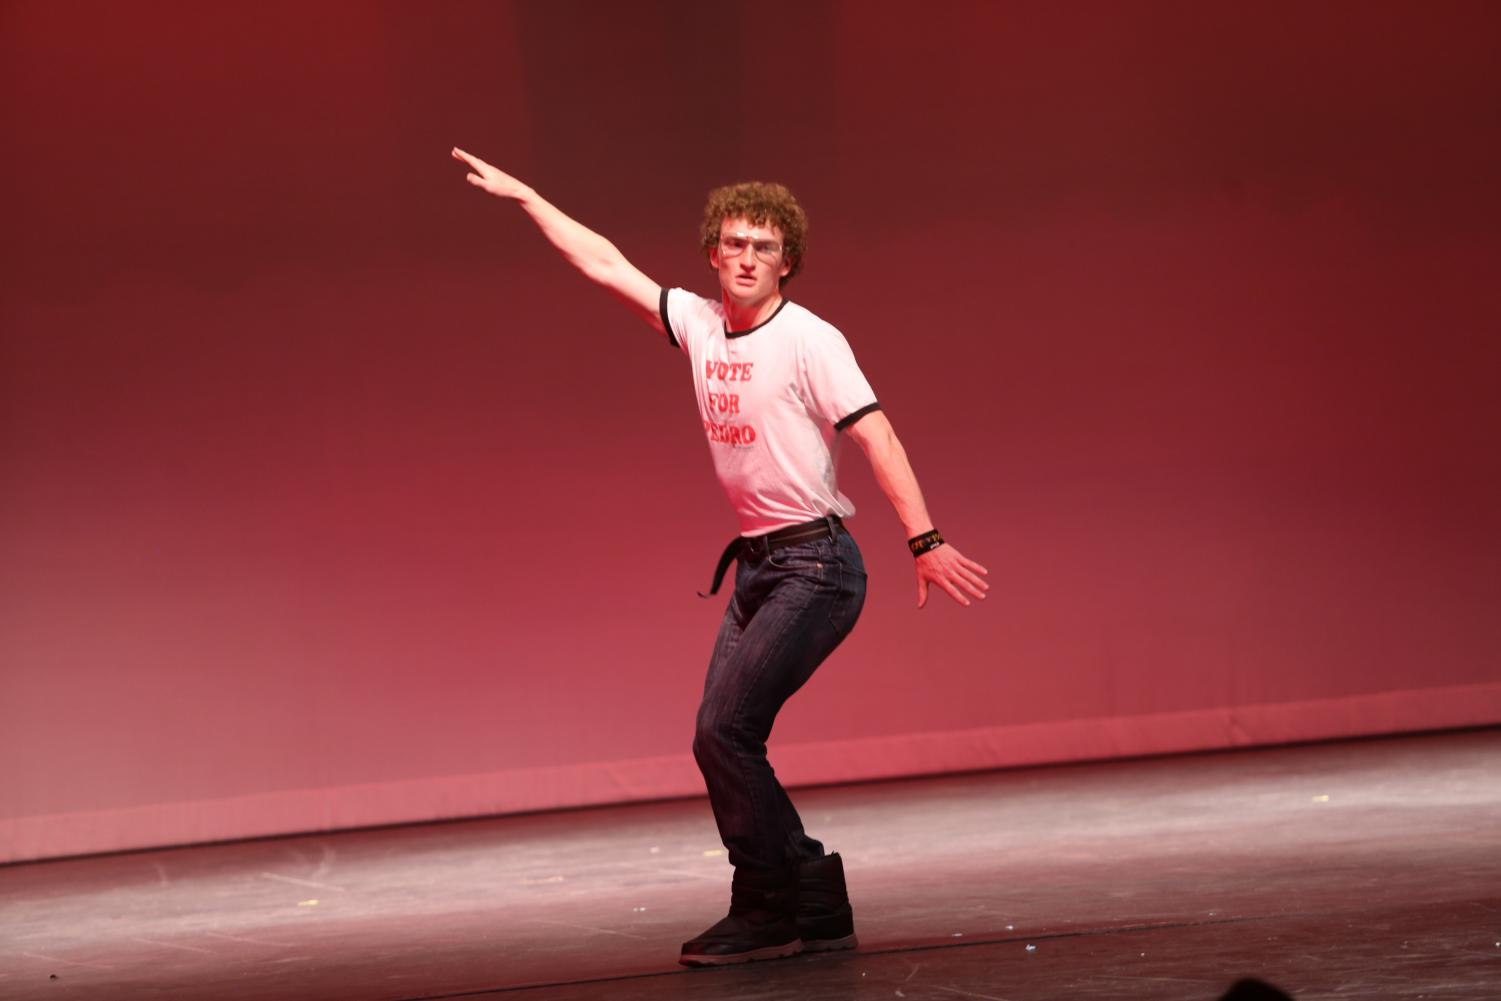 Explosion of talent: Kade Stoner dresses and performs like Napoleon Dynamite, outfit and all, he showed the crowd he was more than just an athlete.